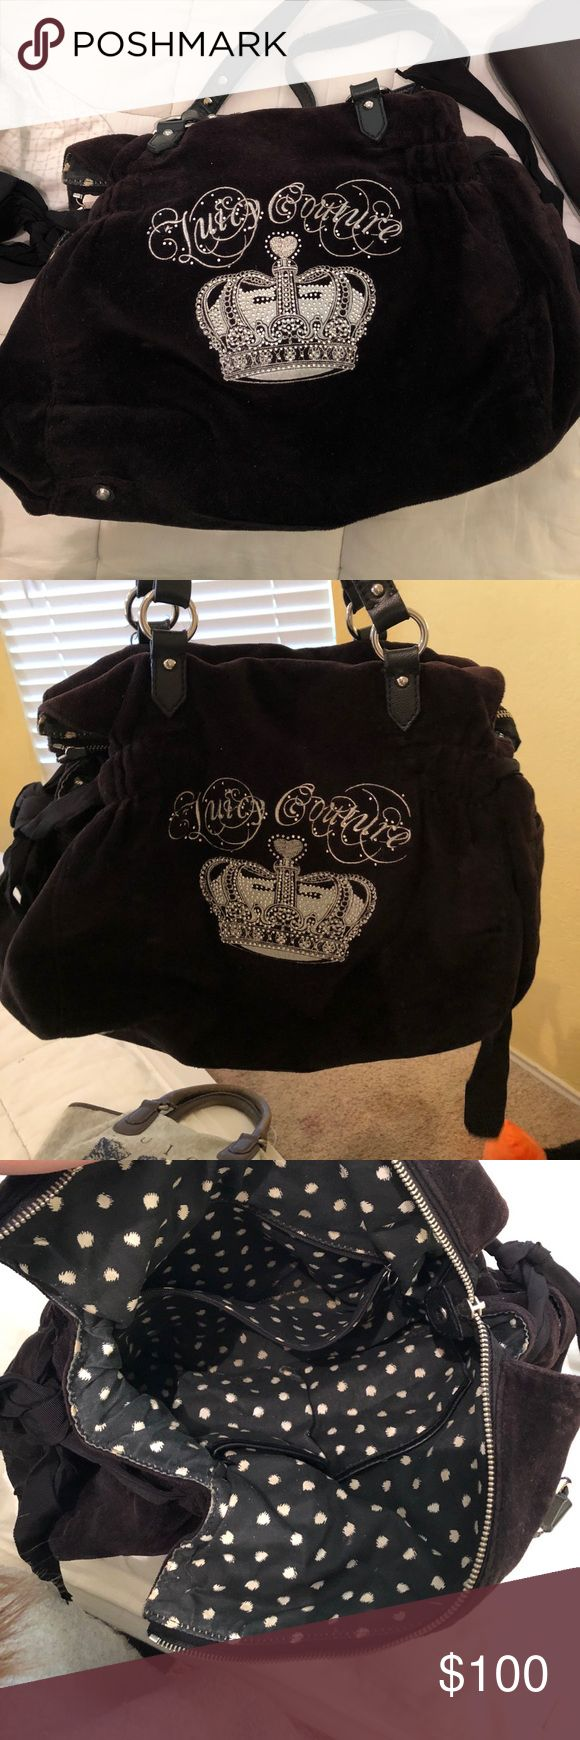 Juicy couture purse Large, black juicy couture purse, 3 pockets inside. Super cute, it's in good condition. Juicy Couture Bags Shoulder Bags